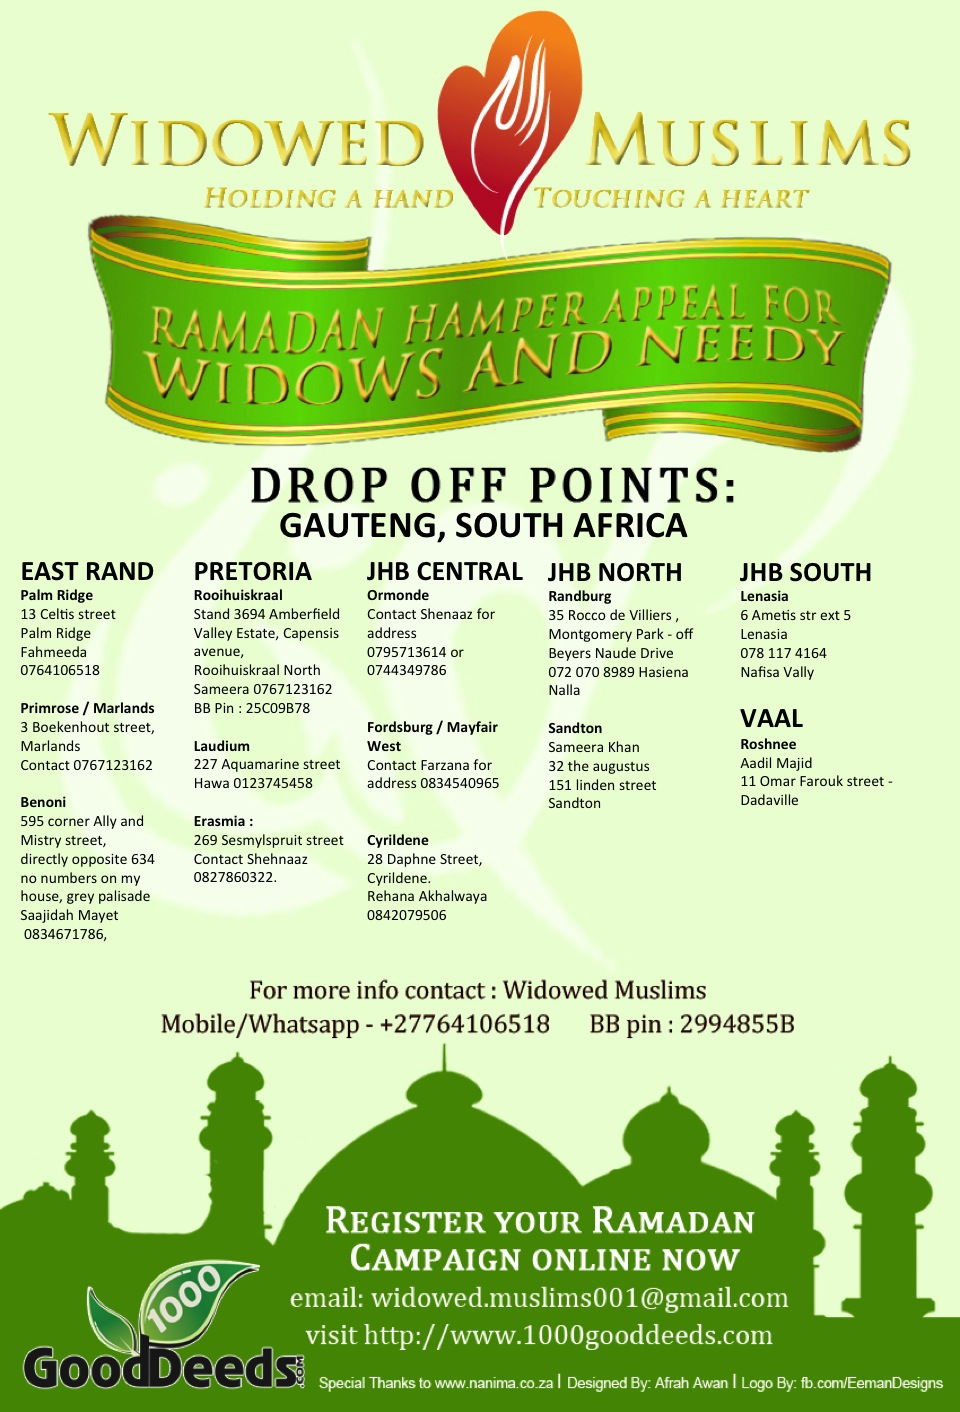 Drop off points widowed muslims gauteng